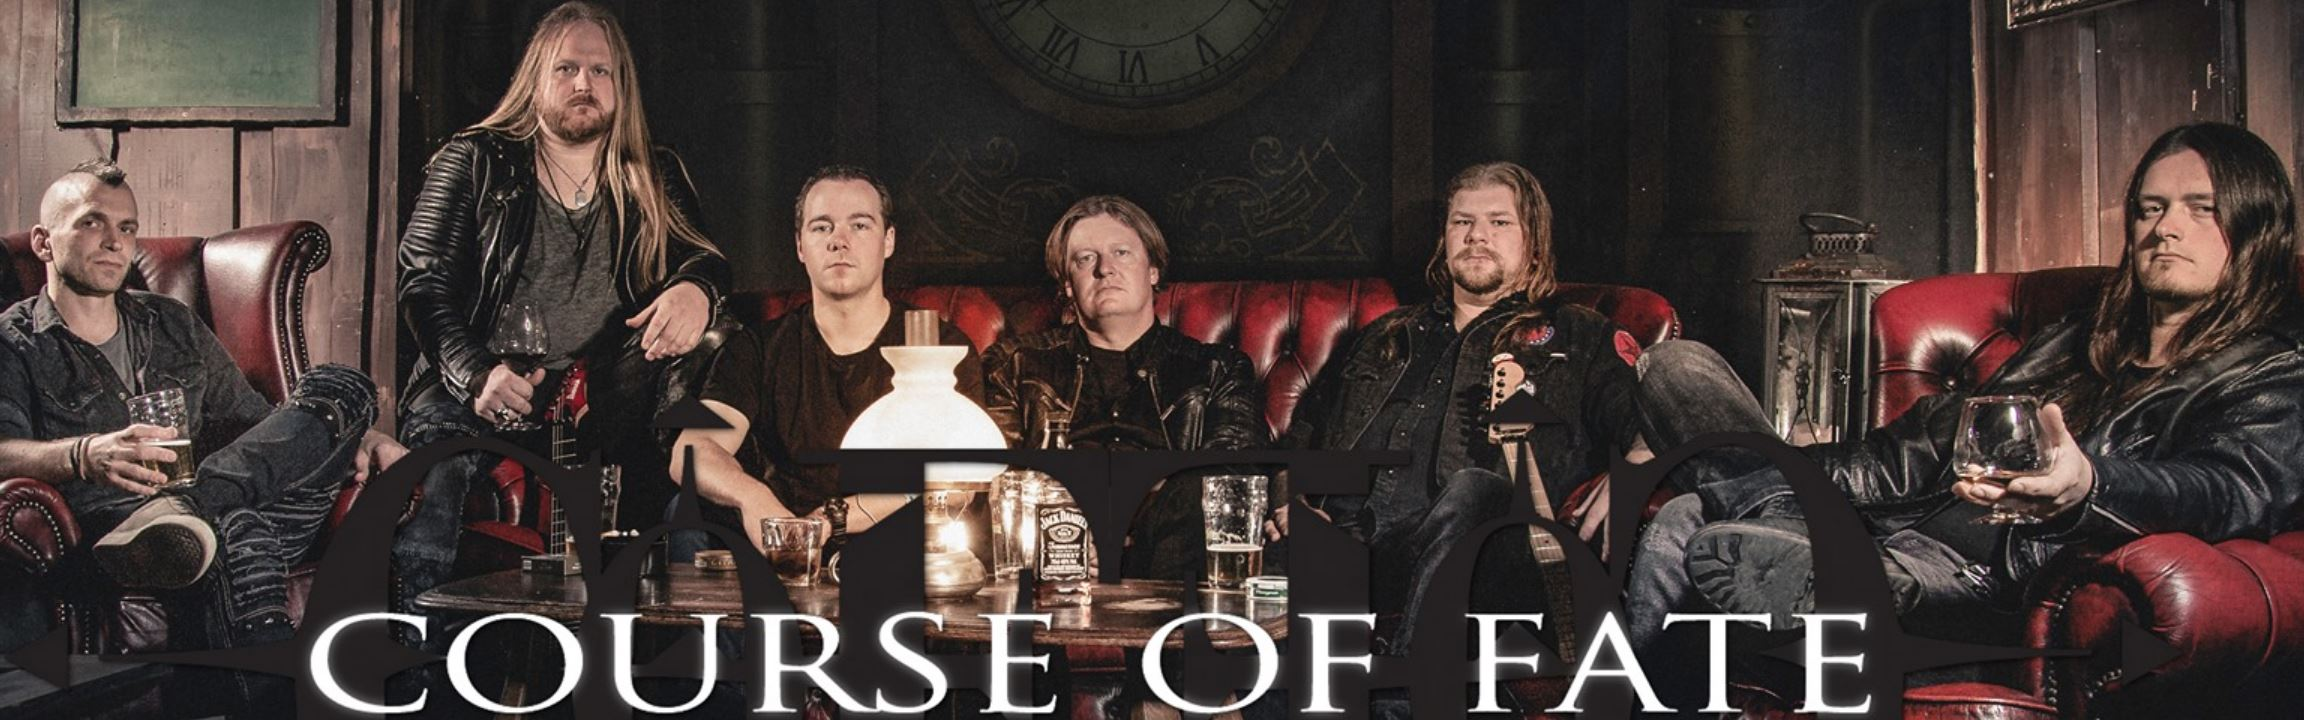 Course of Fate - Photo